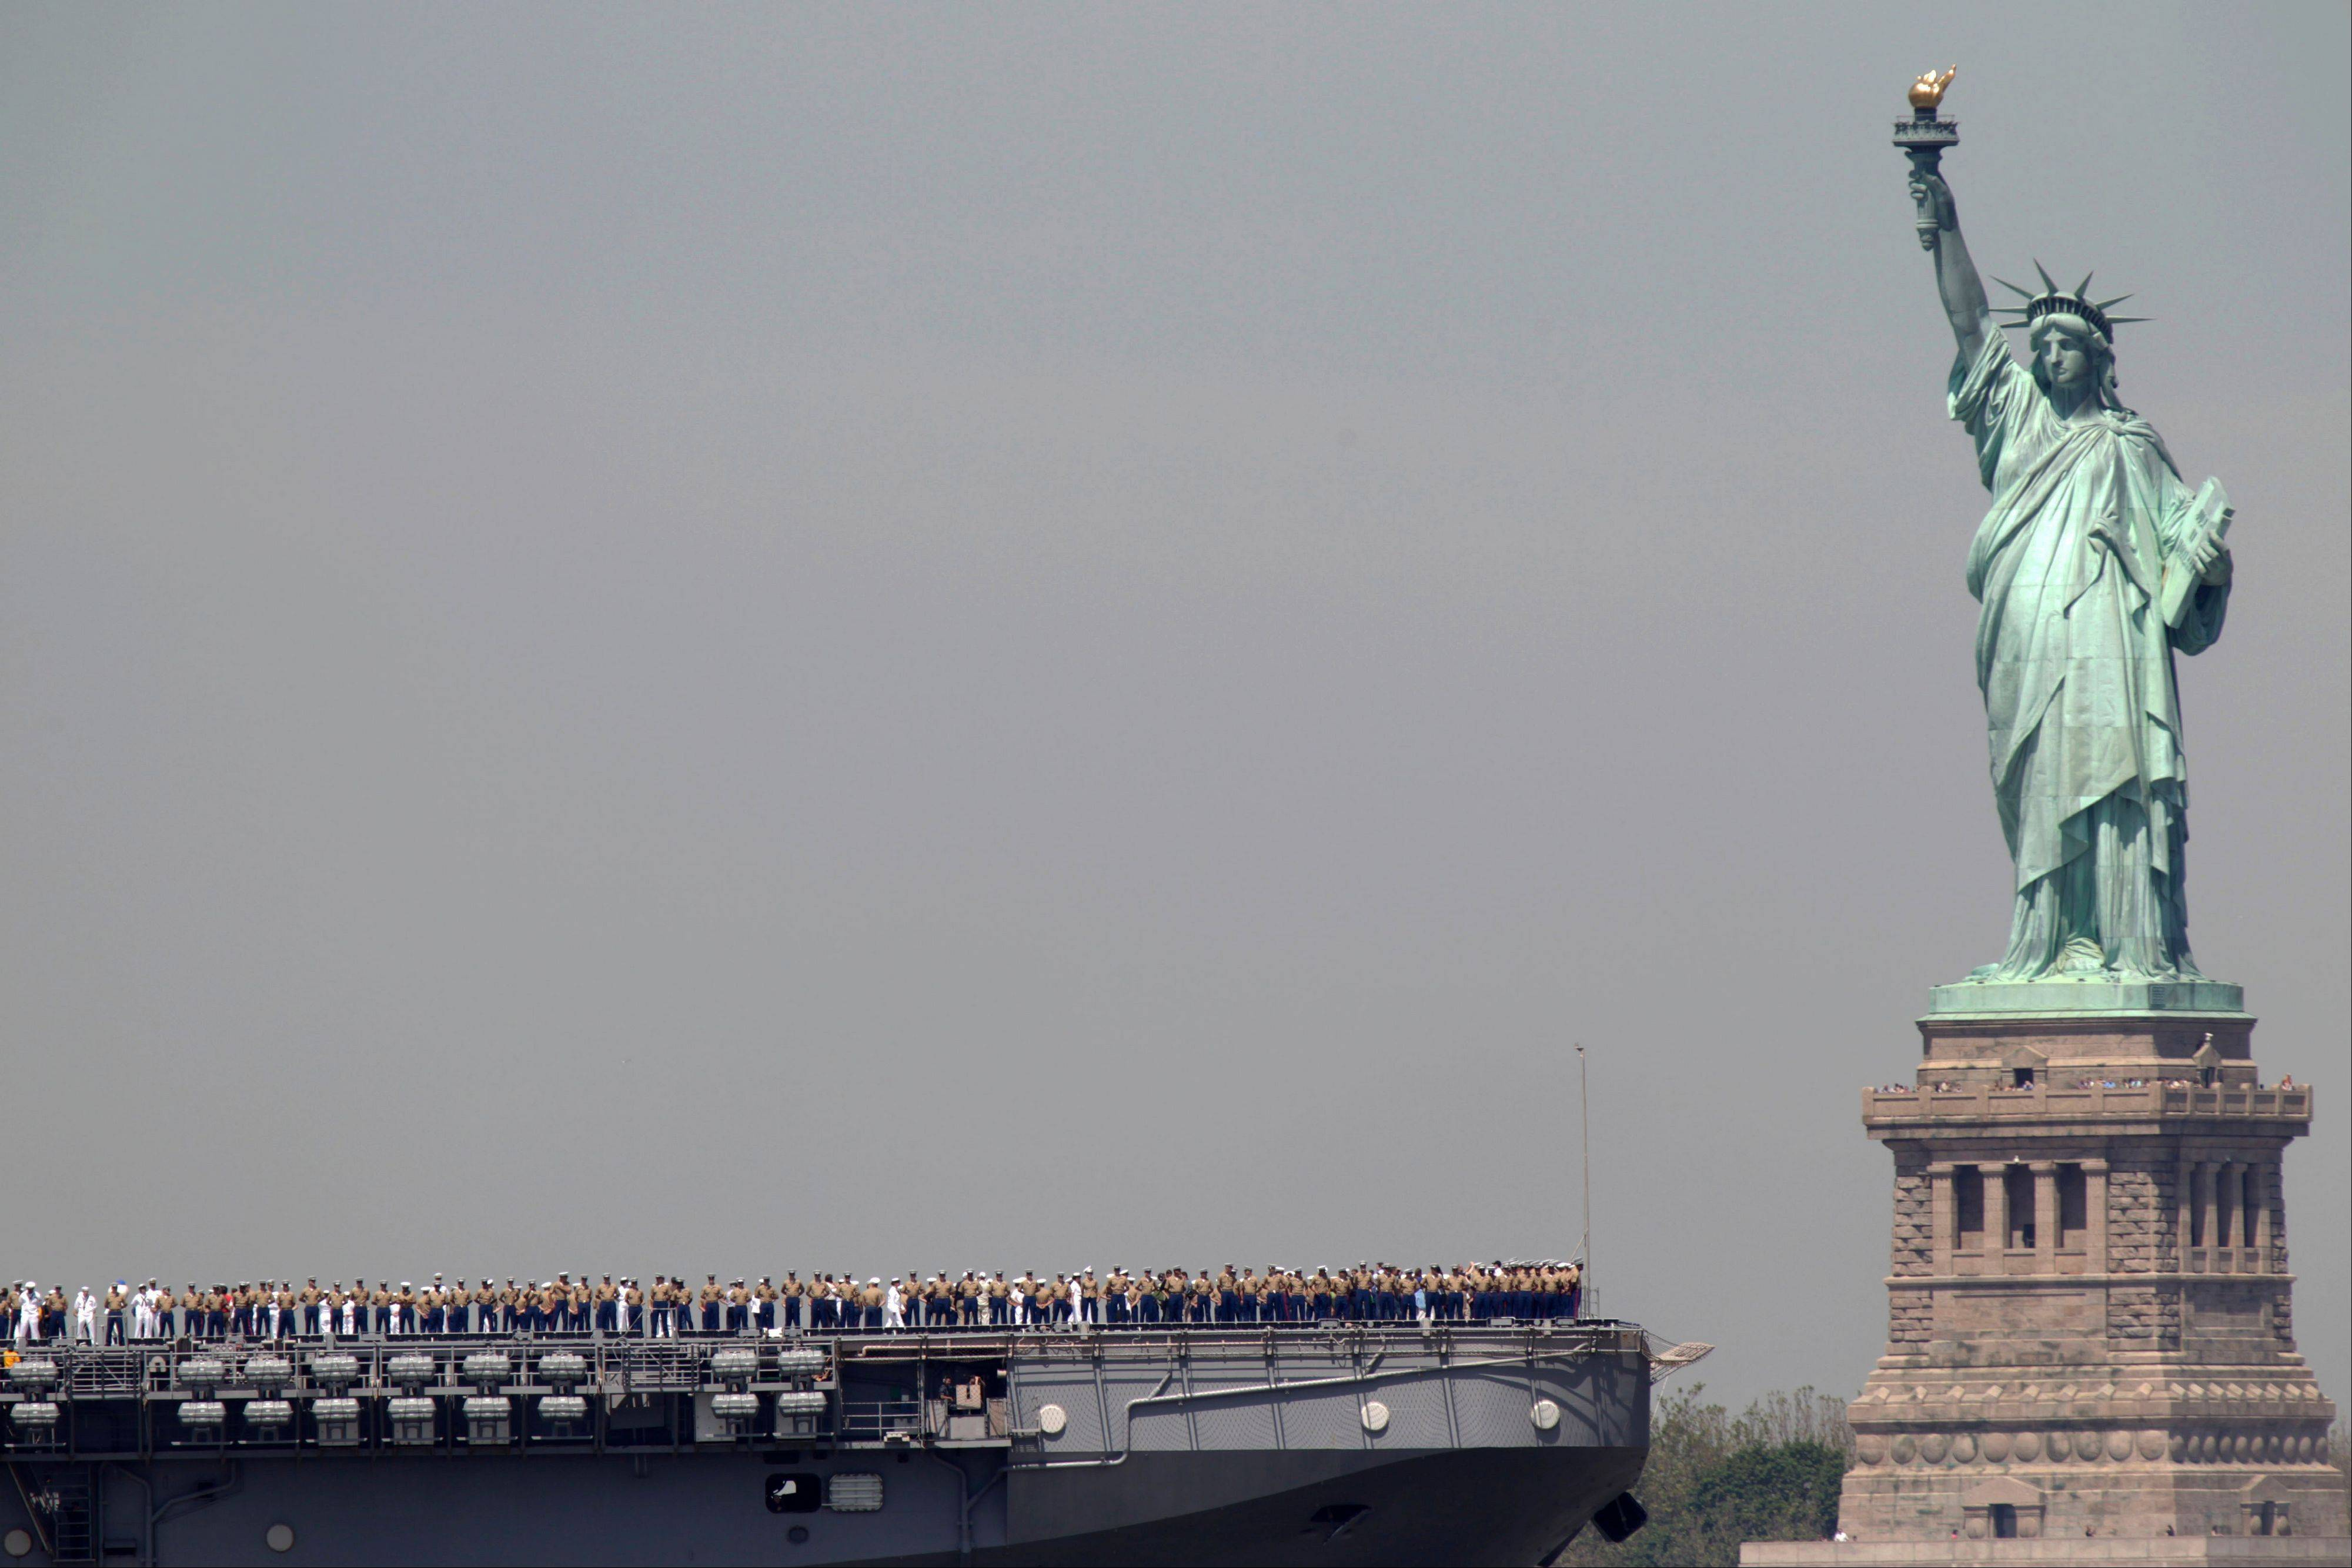 Sailors stand on the deck of the USS Iwo Jima as it passes the Statue of Liberty during Fleet Week in New York.